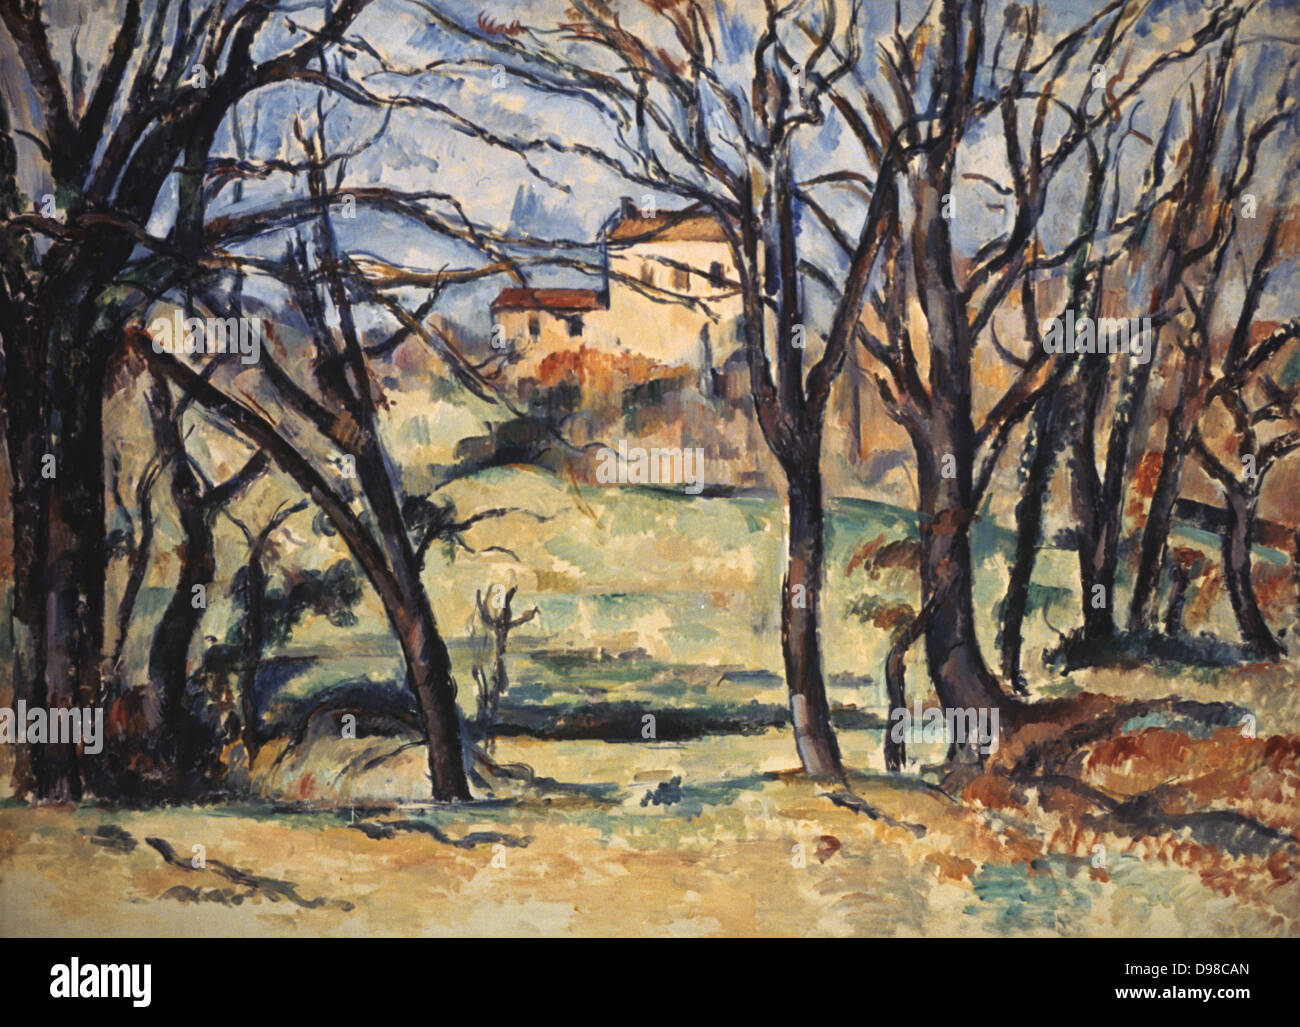 Trees and a House', 1885-1886. Paul Cezanne (1839-1906) French Post-Impressionist painter. - Stock Image